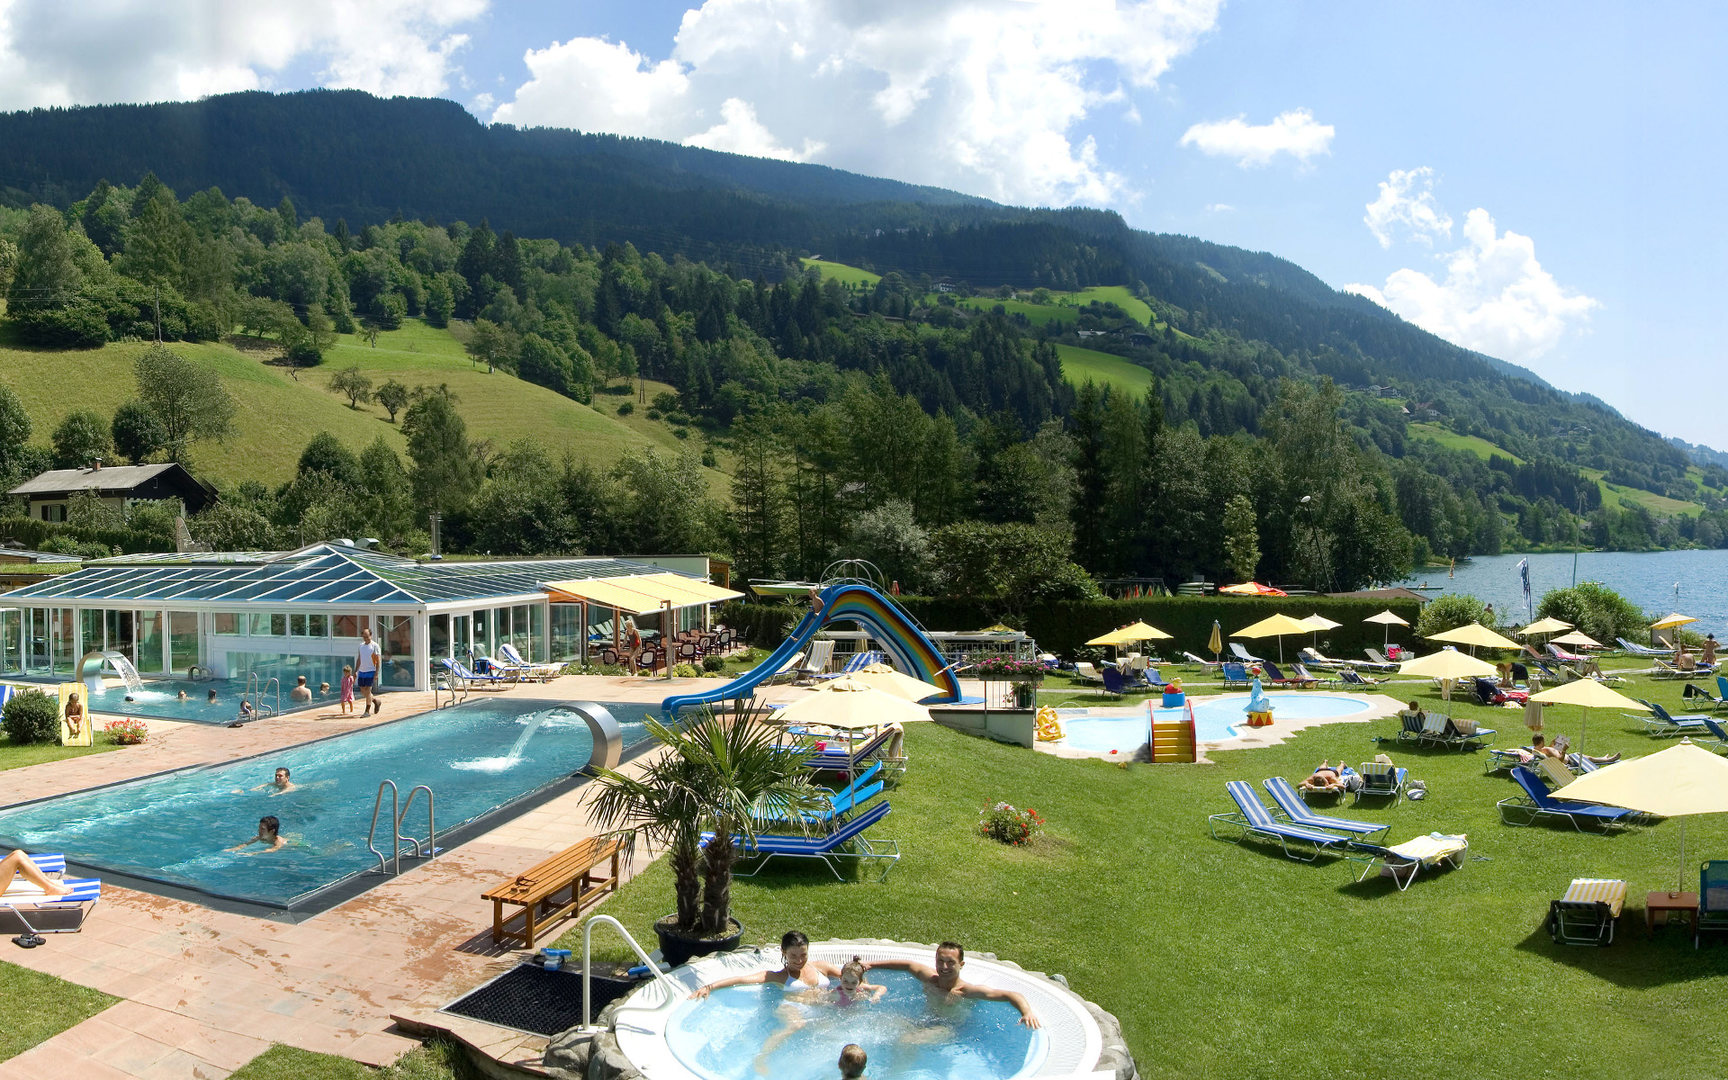 brennseehof-schwimmbad-pan-3-2